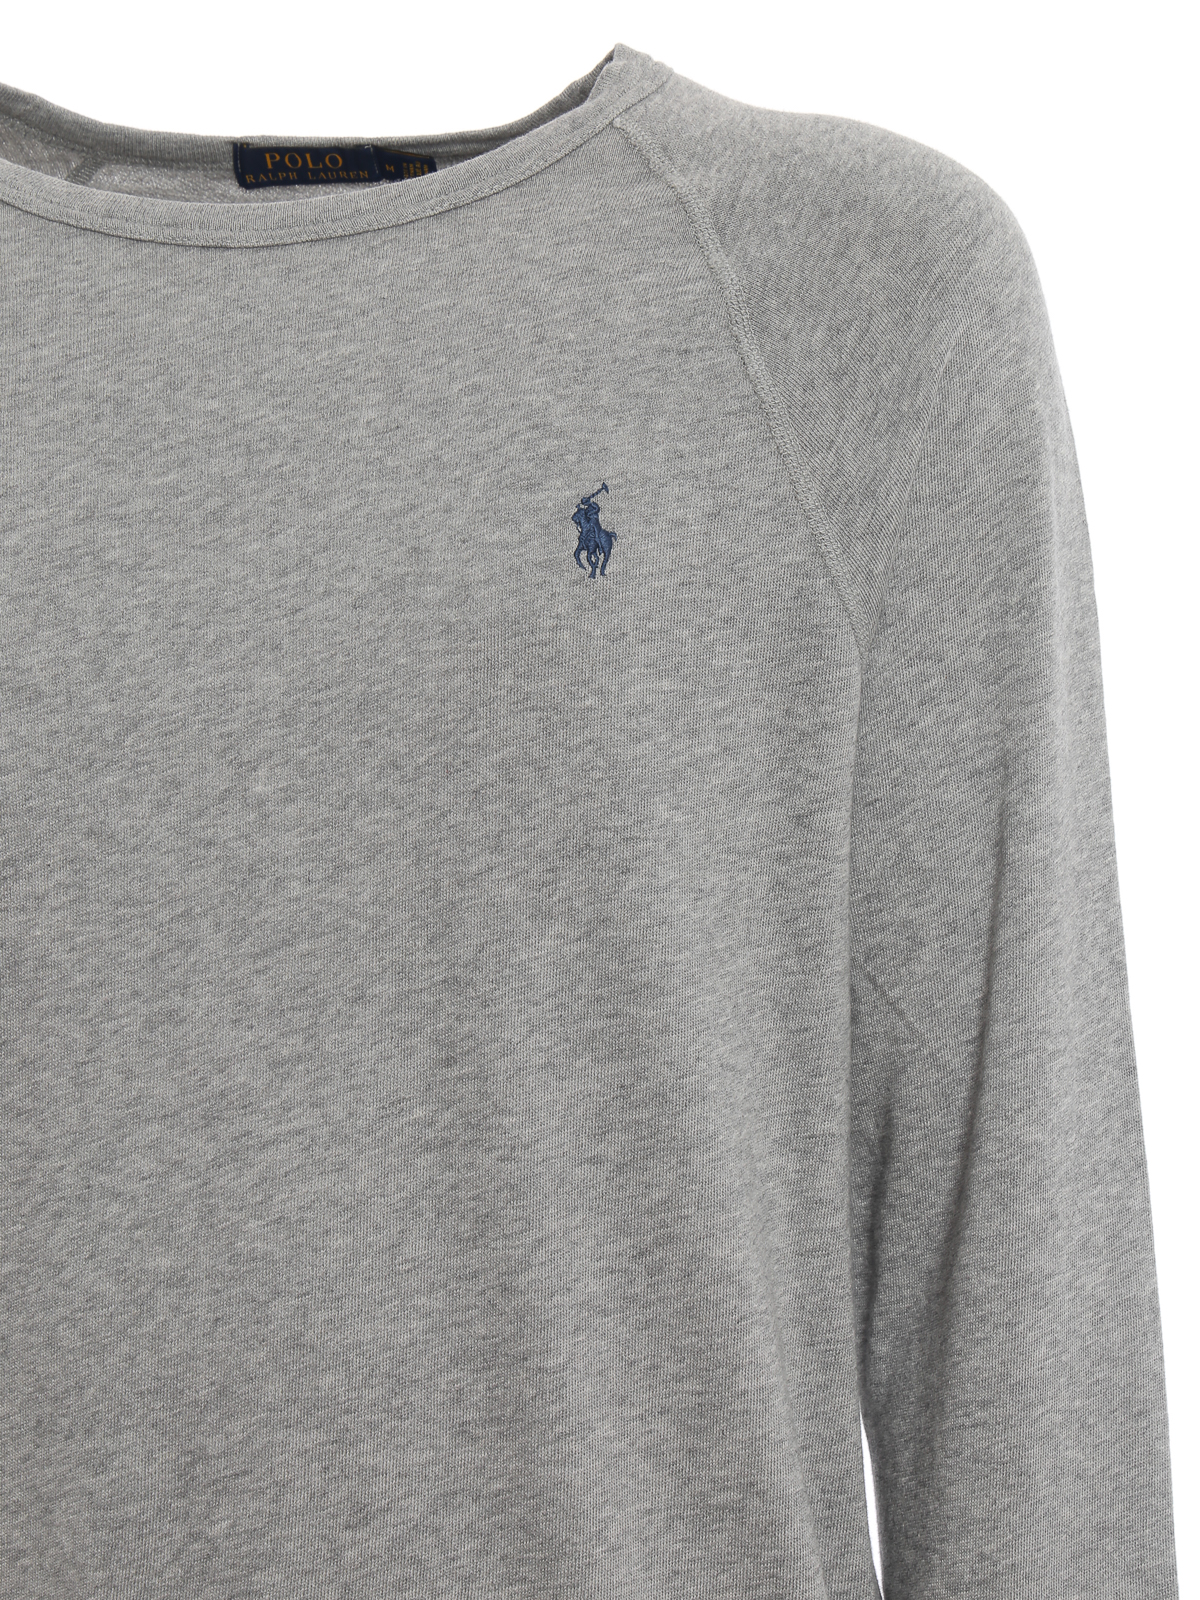 Raglan sleeve crew neck sweatshirt POLO RALPH LAUREN | -108764232 | 710644952023